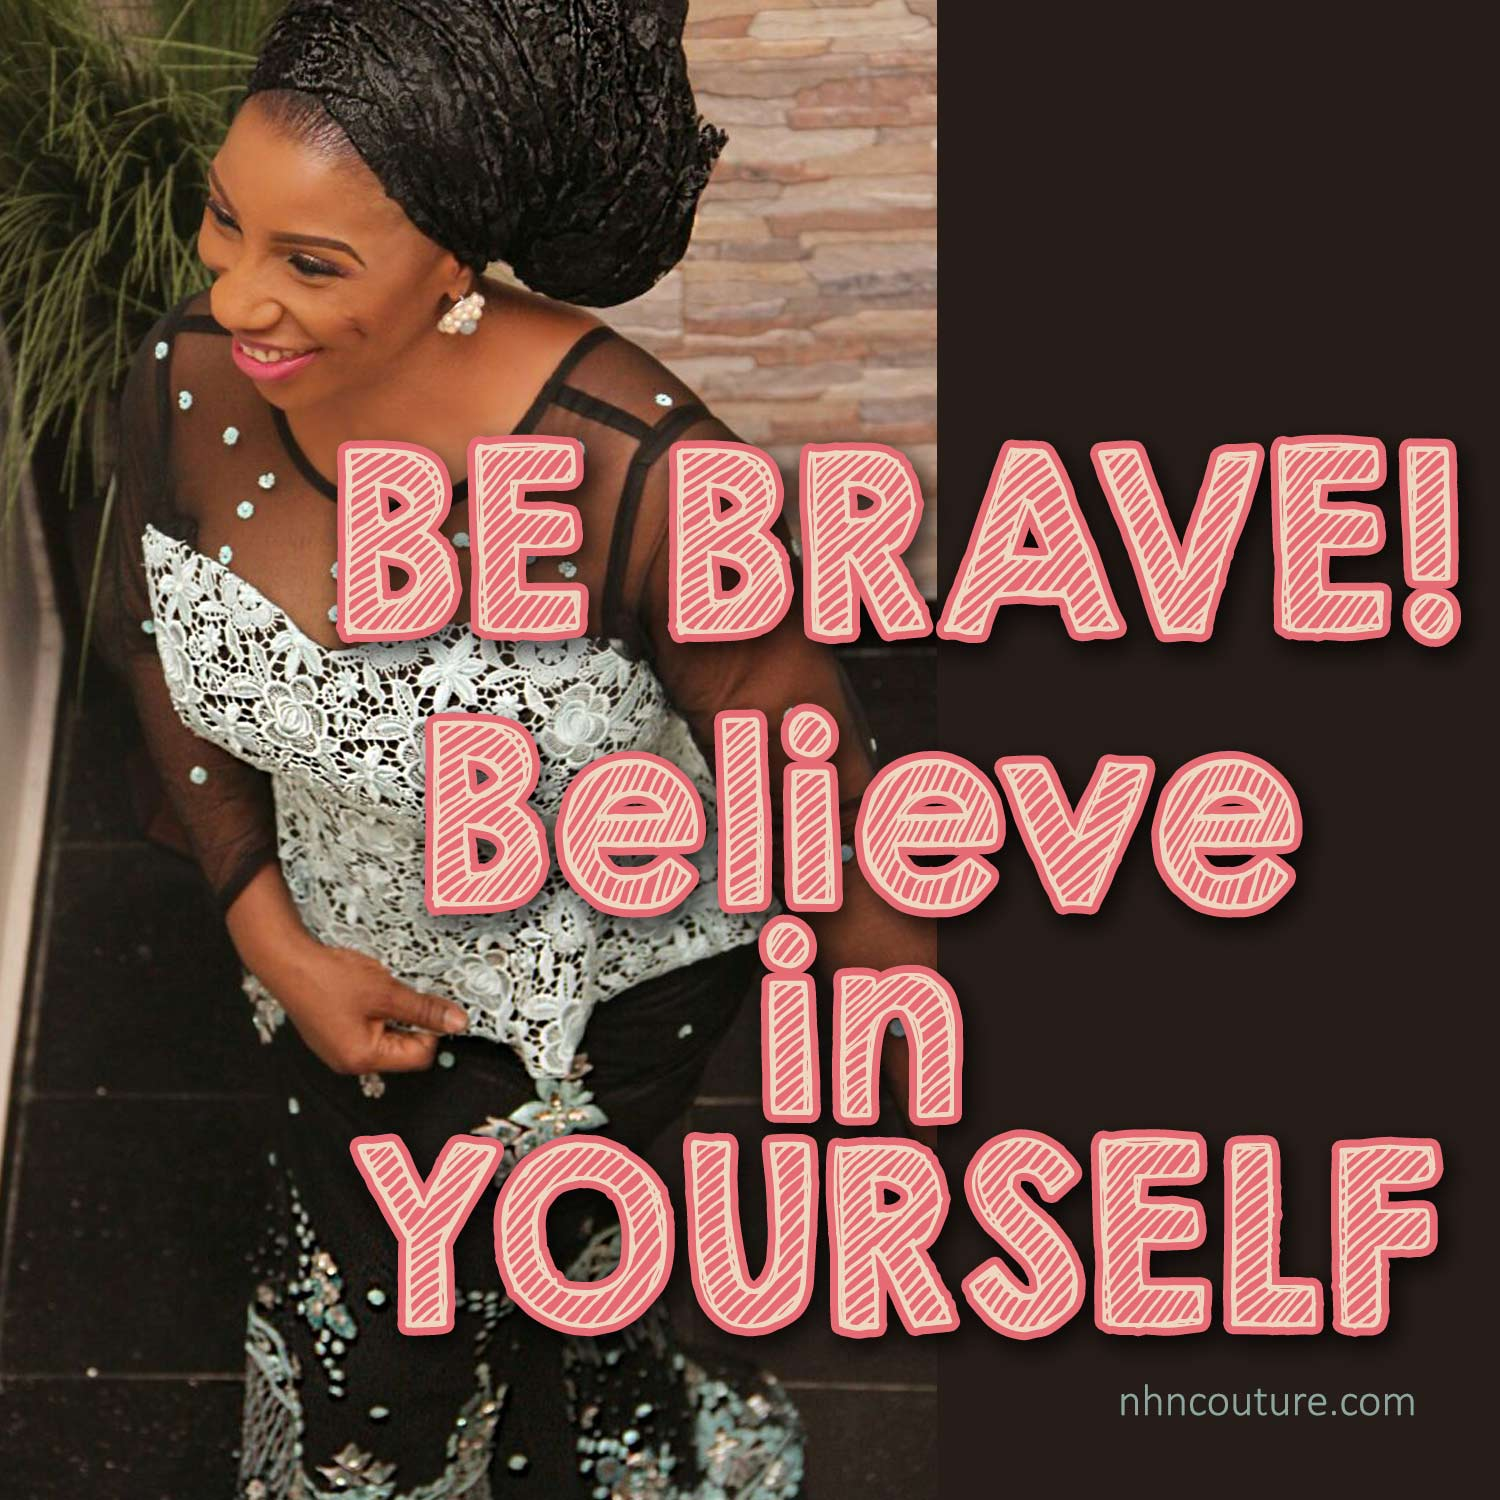 Believe-in-yourself_NHNblog